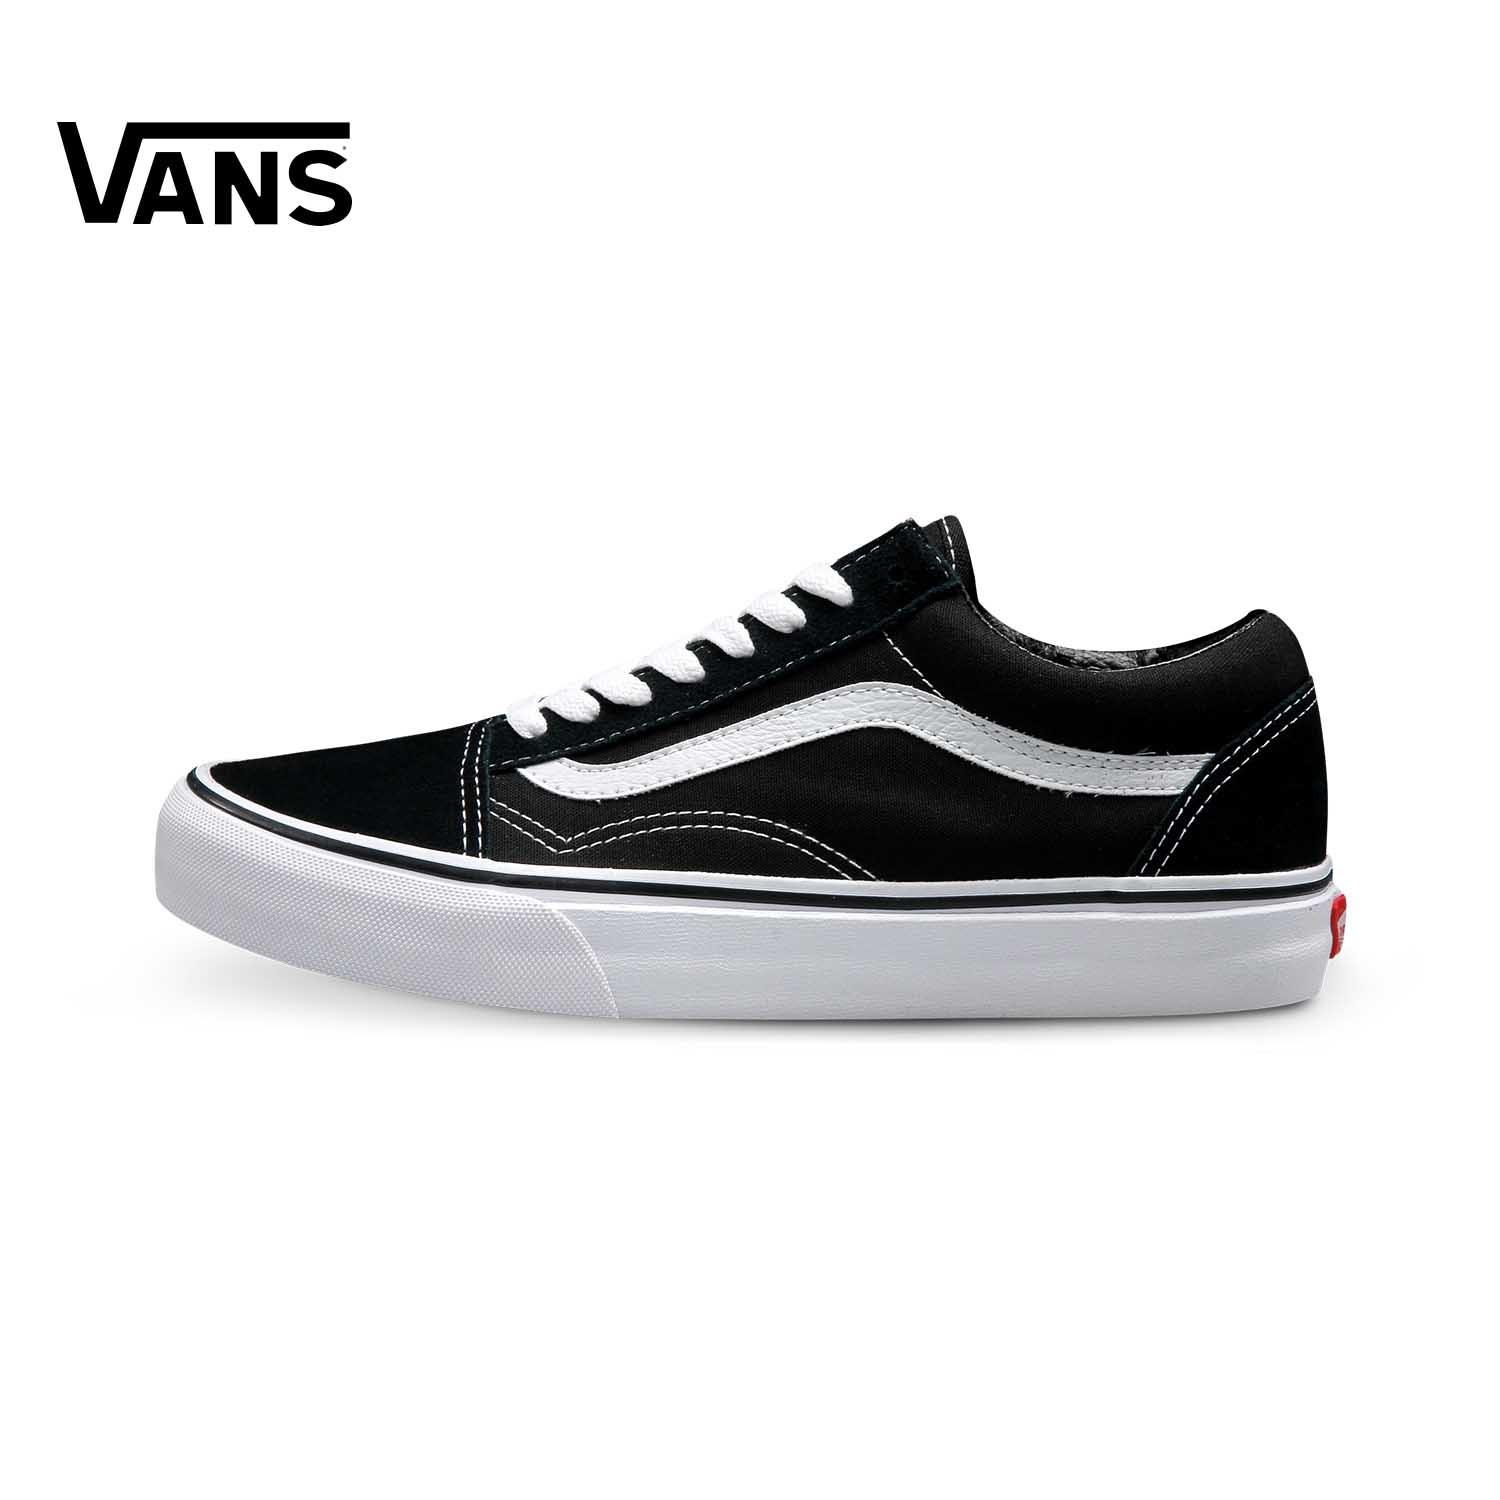 Product Vans Men s Shoes Old Skool Classic Style Low Top Skateboard Shoes  VN-0D3HY28 BLACK WHITE 5e30cbf36c